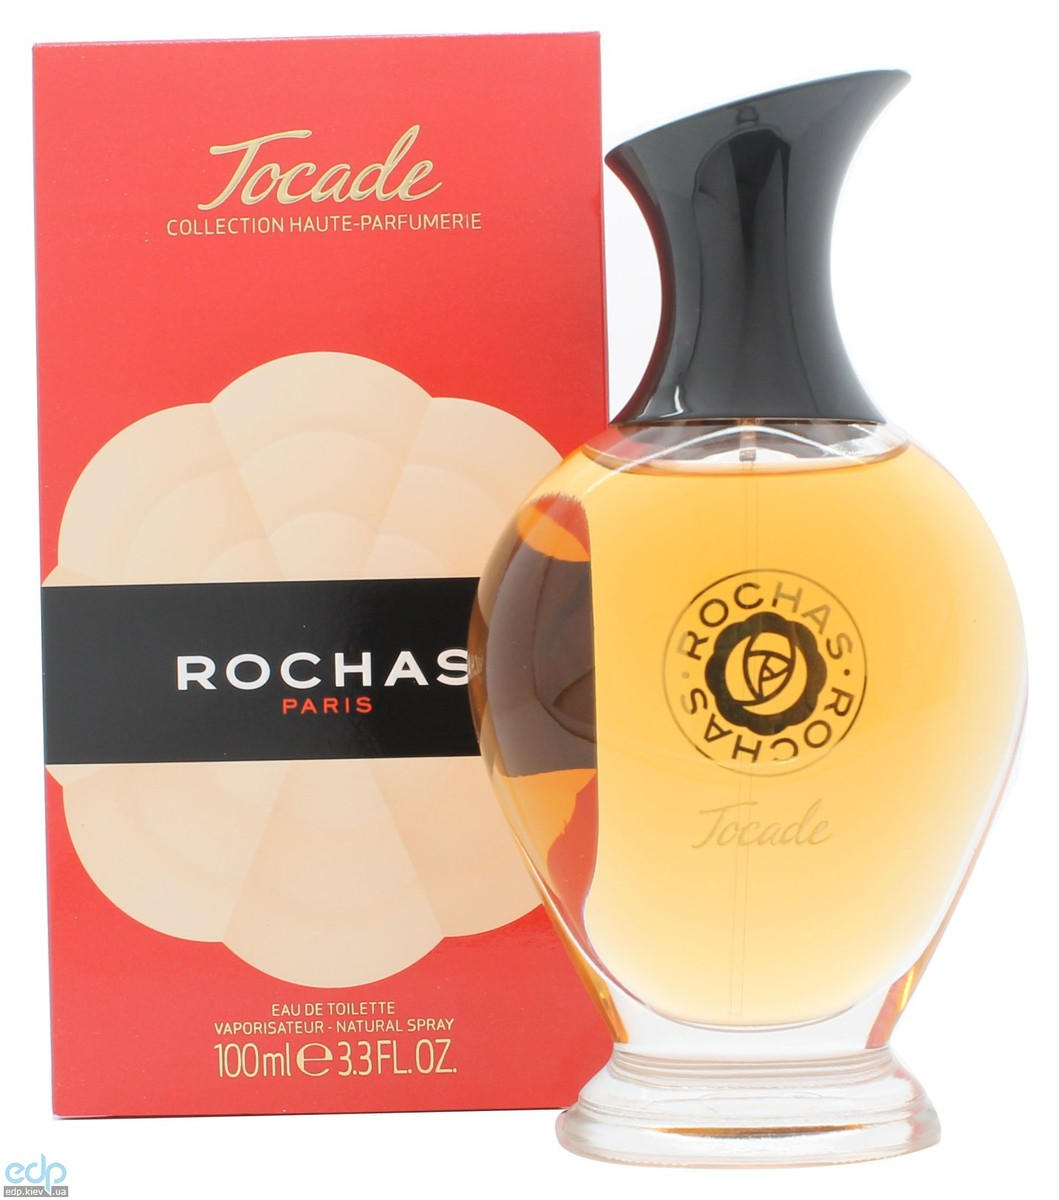 Rochas Tocade Collection Haute Parfumerie - туалетная вода - 100 ml